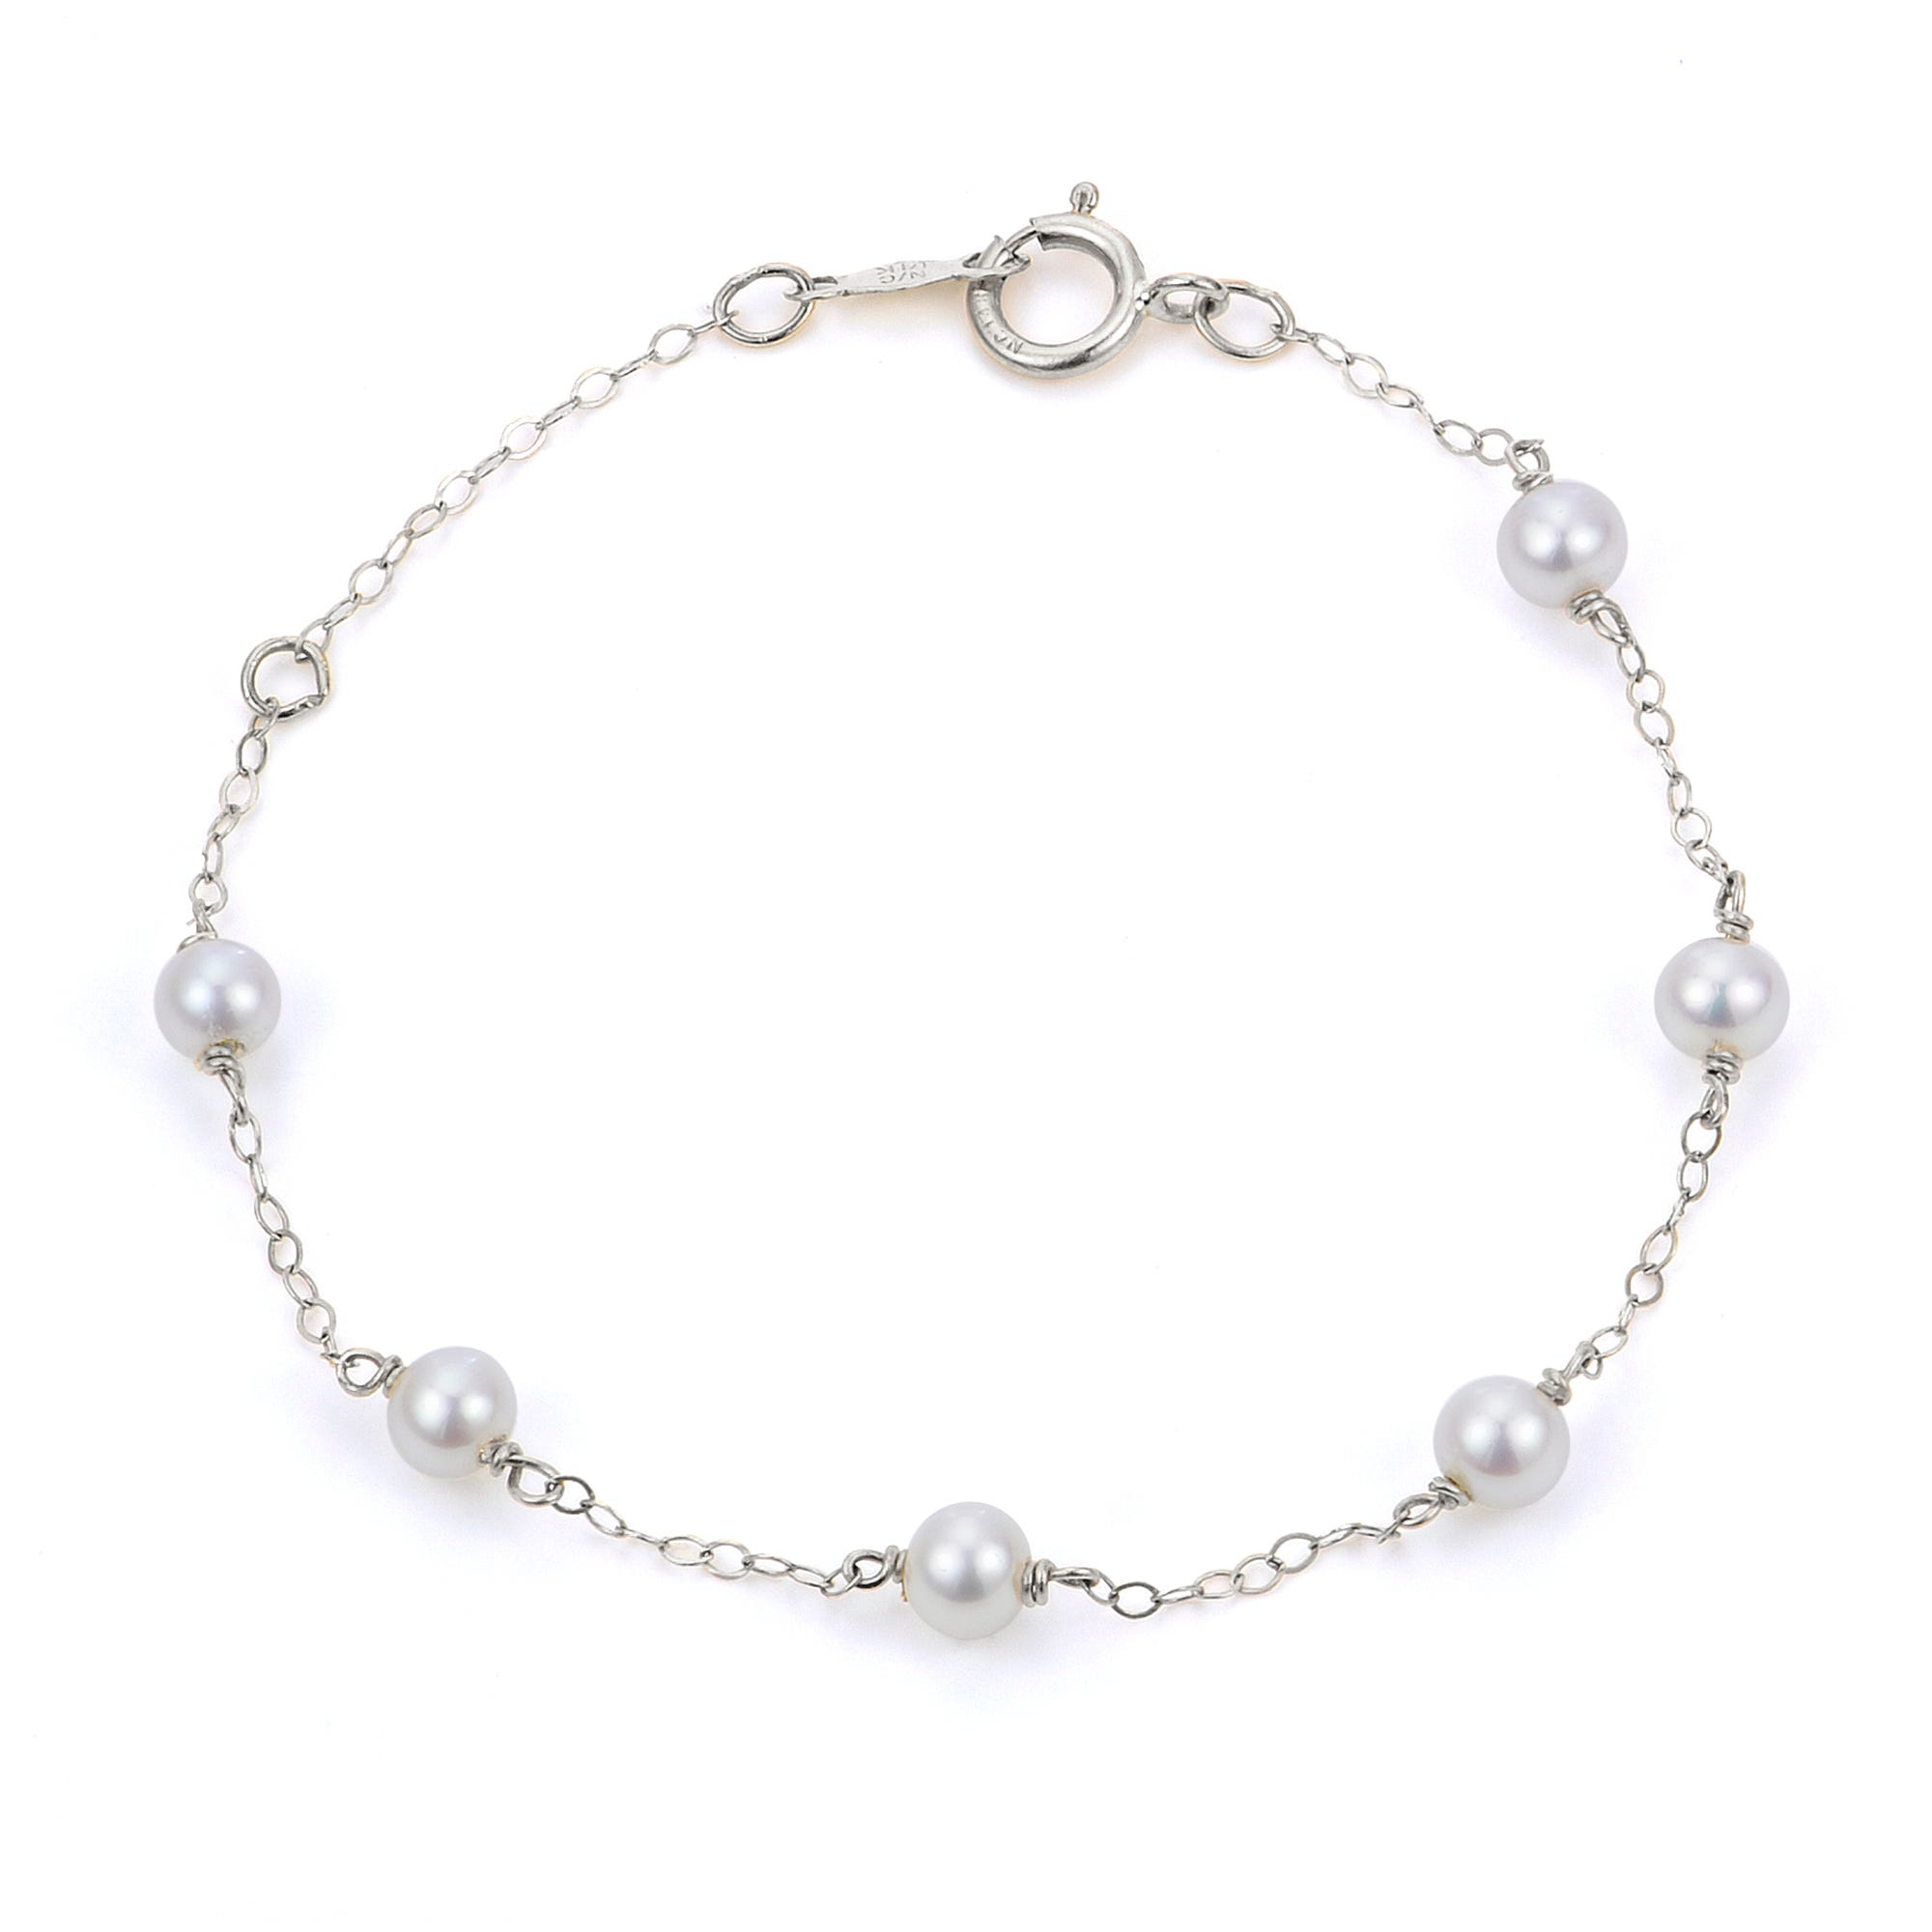 Freshwater Pearl Children's Bracelet in Sterling Silver